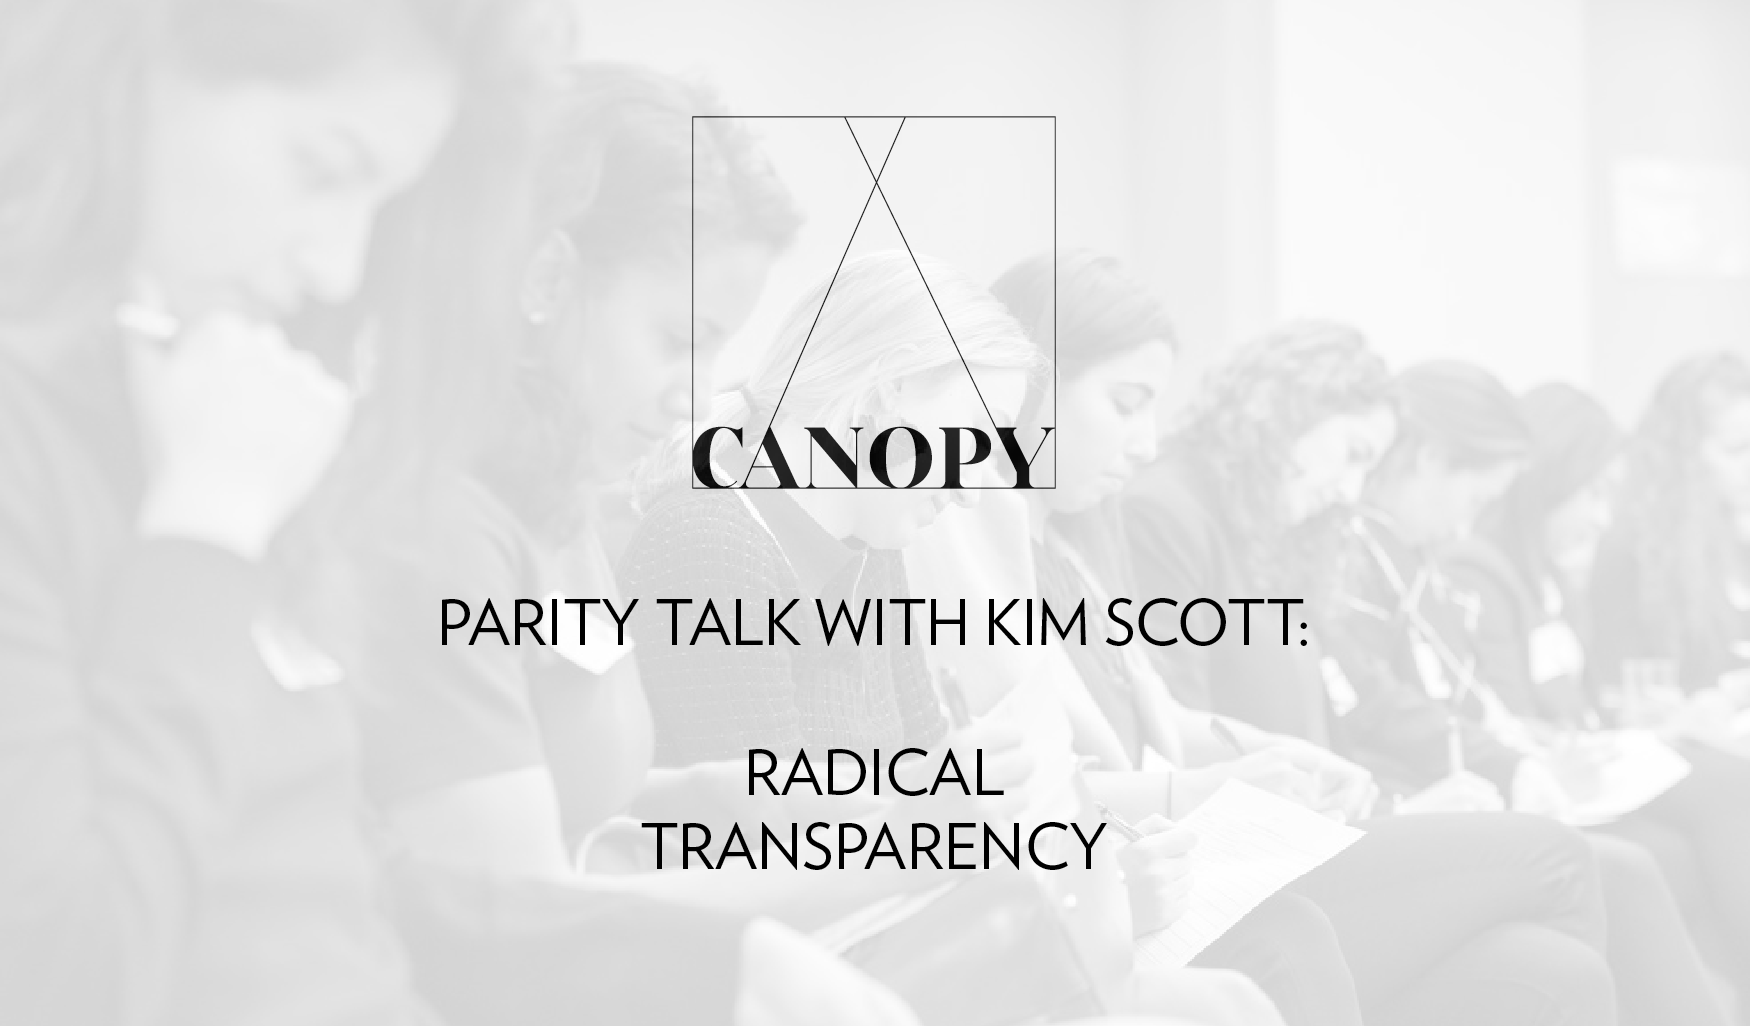 PARITY TALK WITH KIM SCOTT